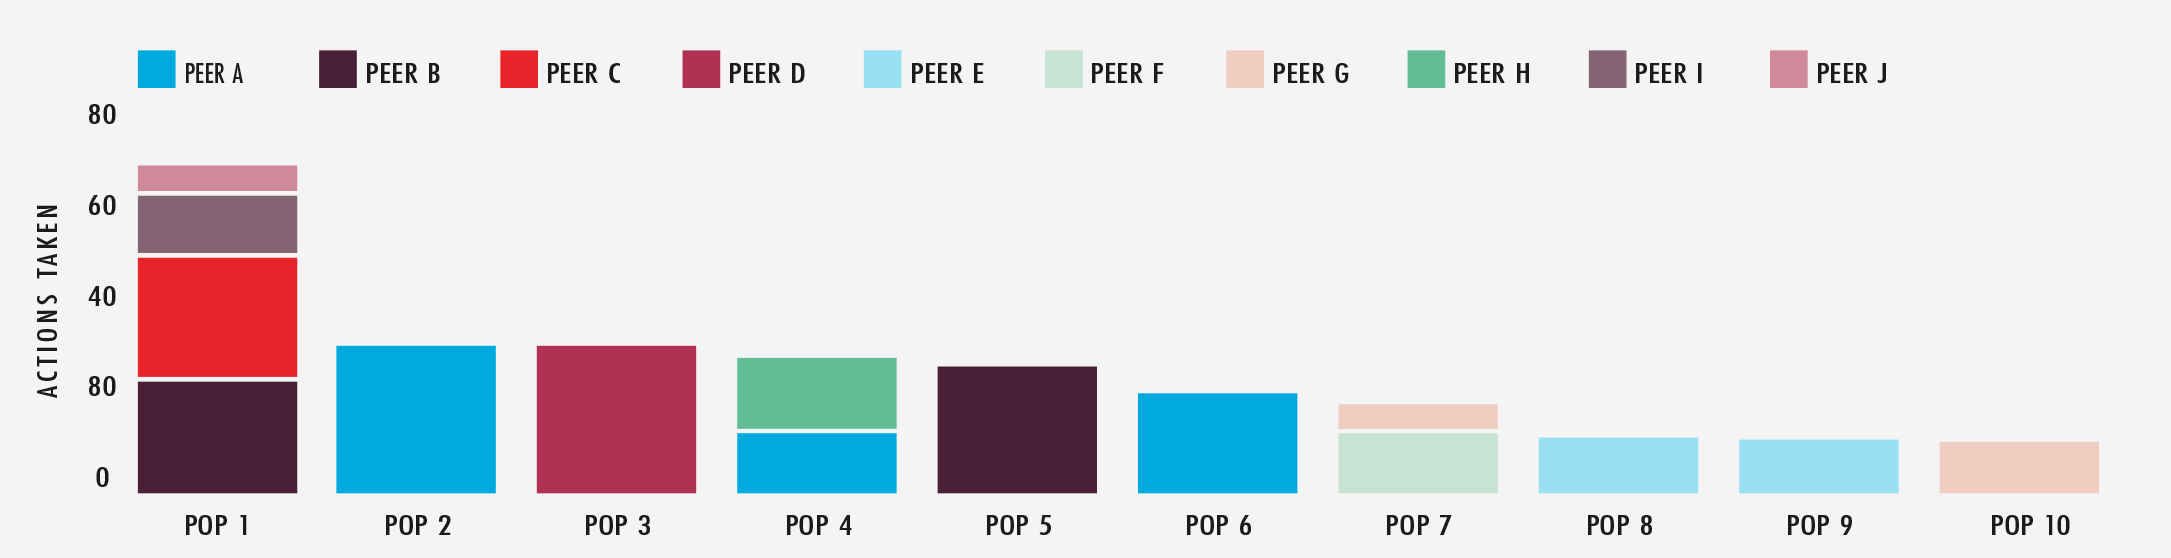 pop-actions-bar-graph